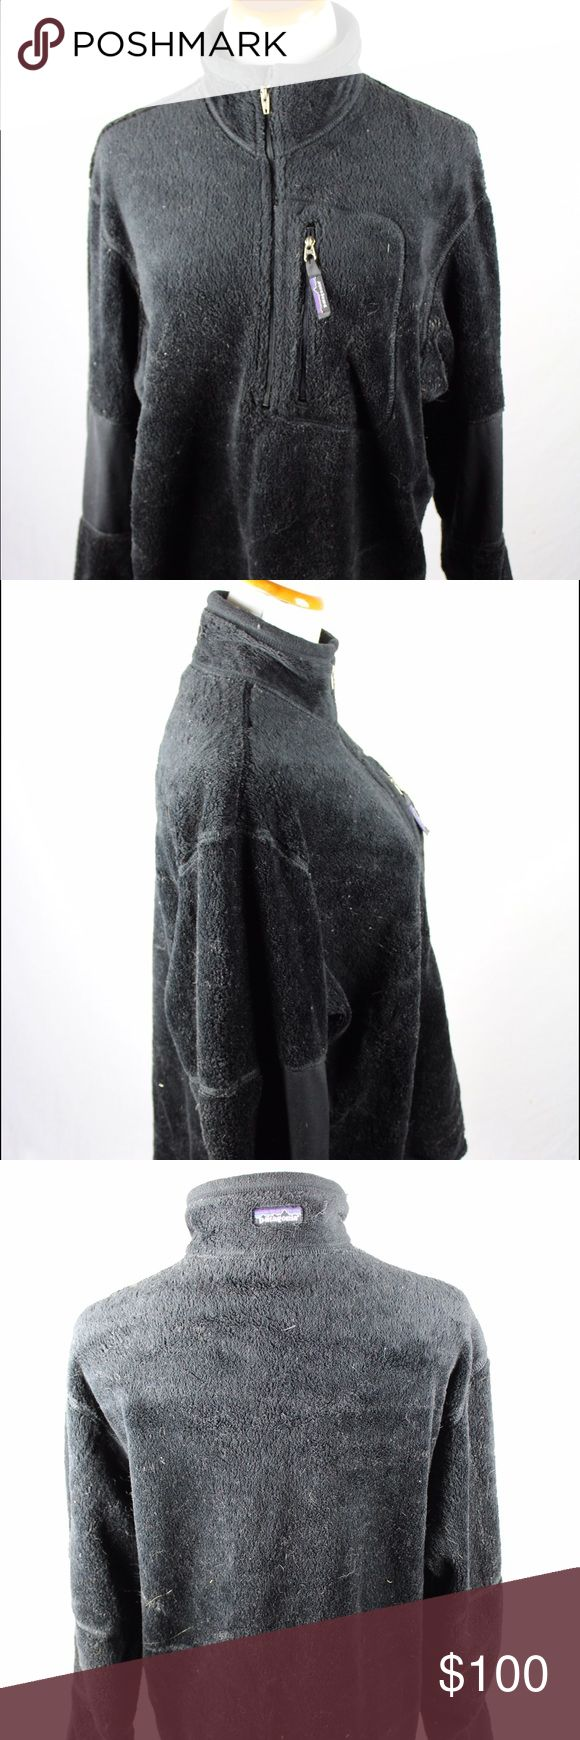 Patagonia Black Fleece This black fleece zip is a great unisex piece of clothing. Item was professionally cleaned before listed. SKU in warehouse is #611. Patagonia Jackets & Coats